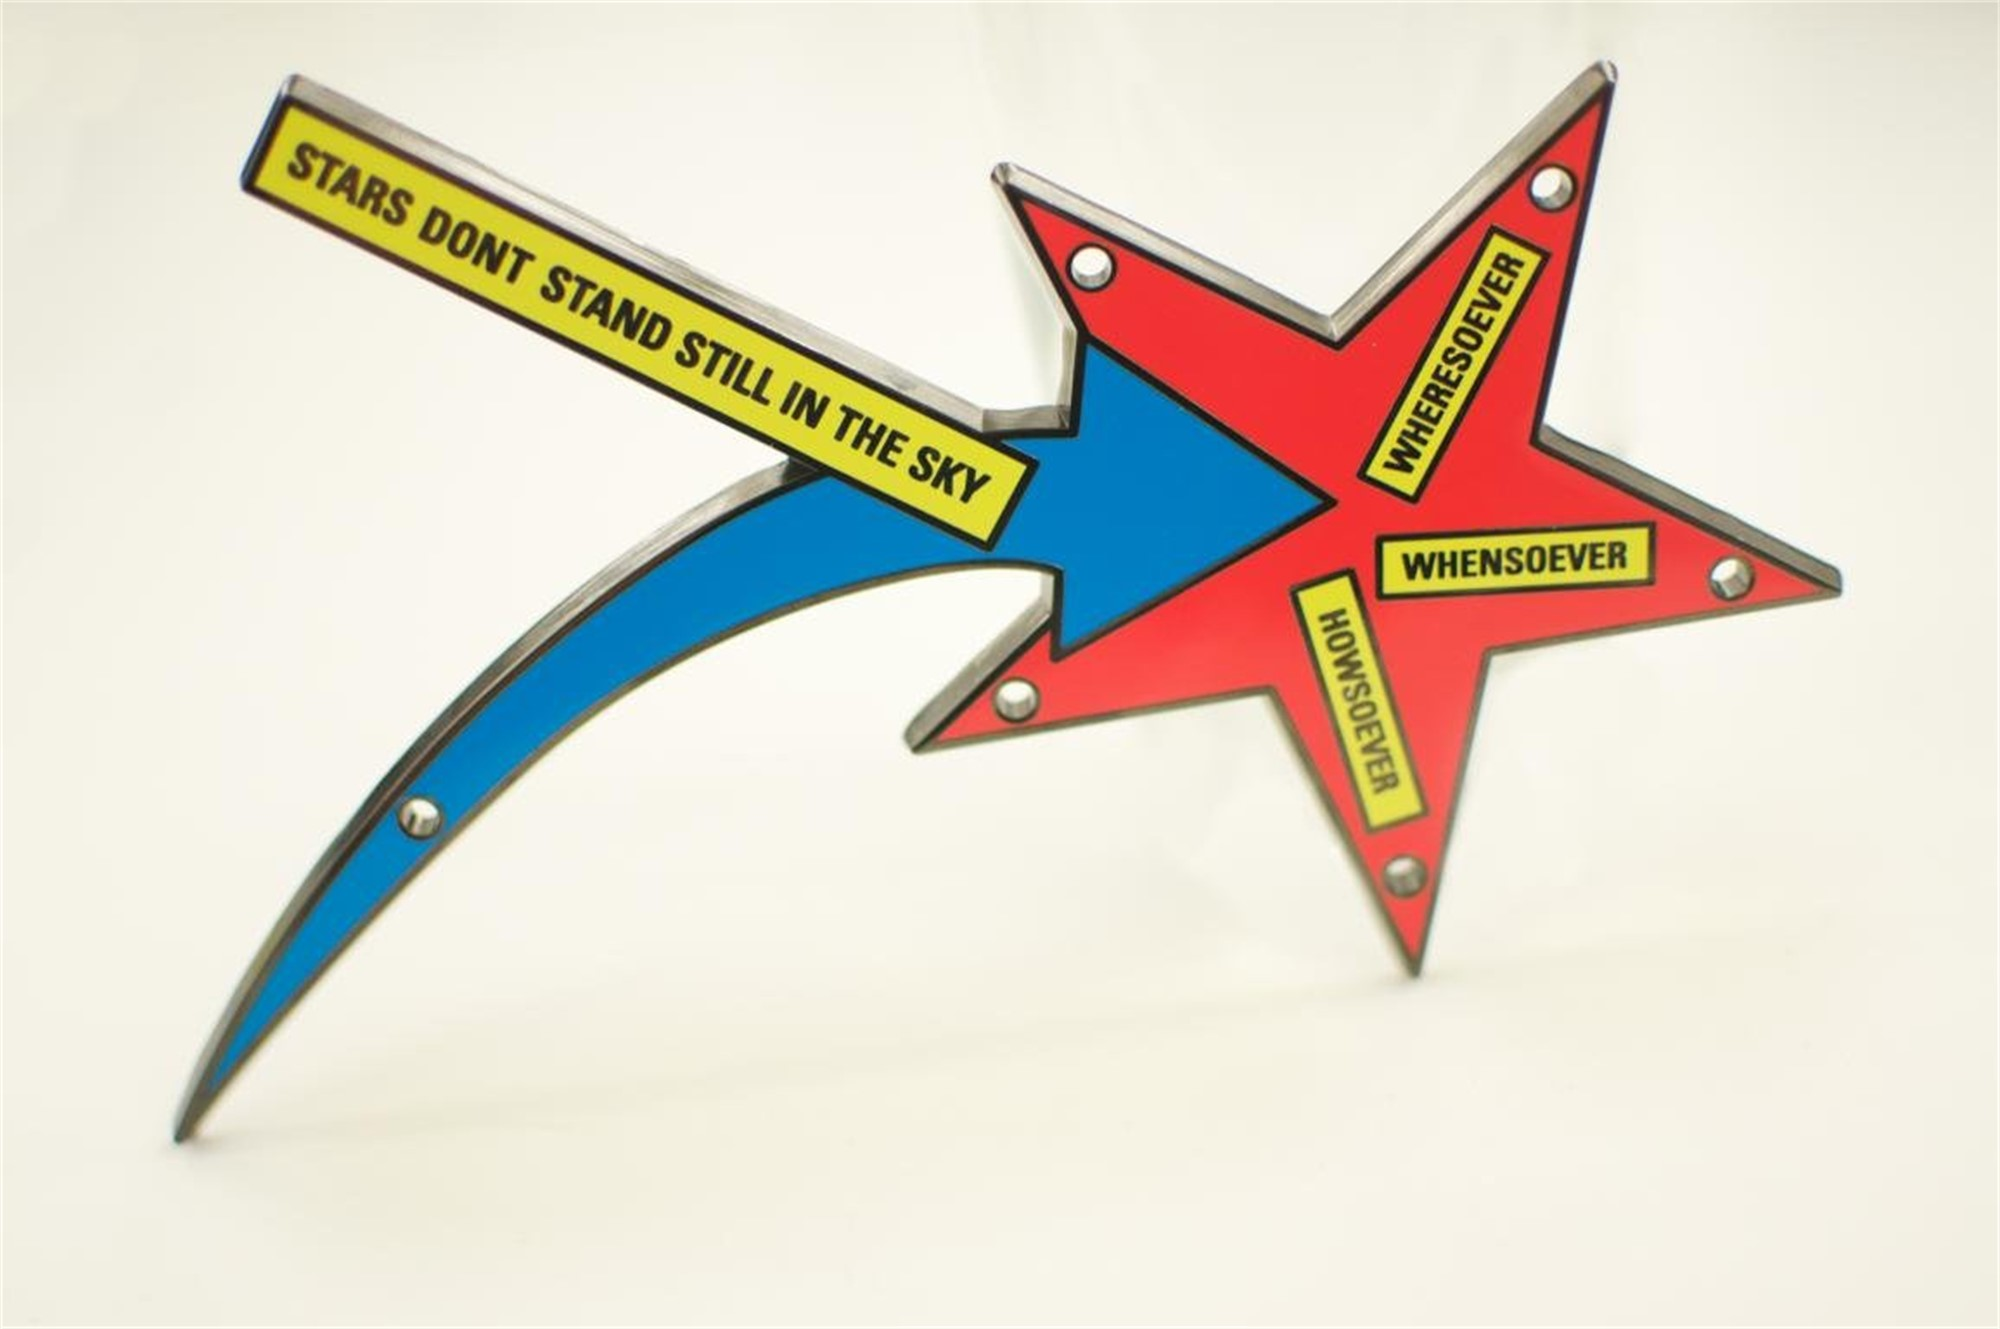 Stars Don't Stand Still in the Sky by Lawrence Weiner